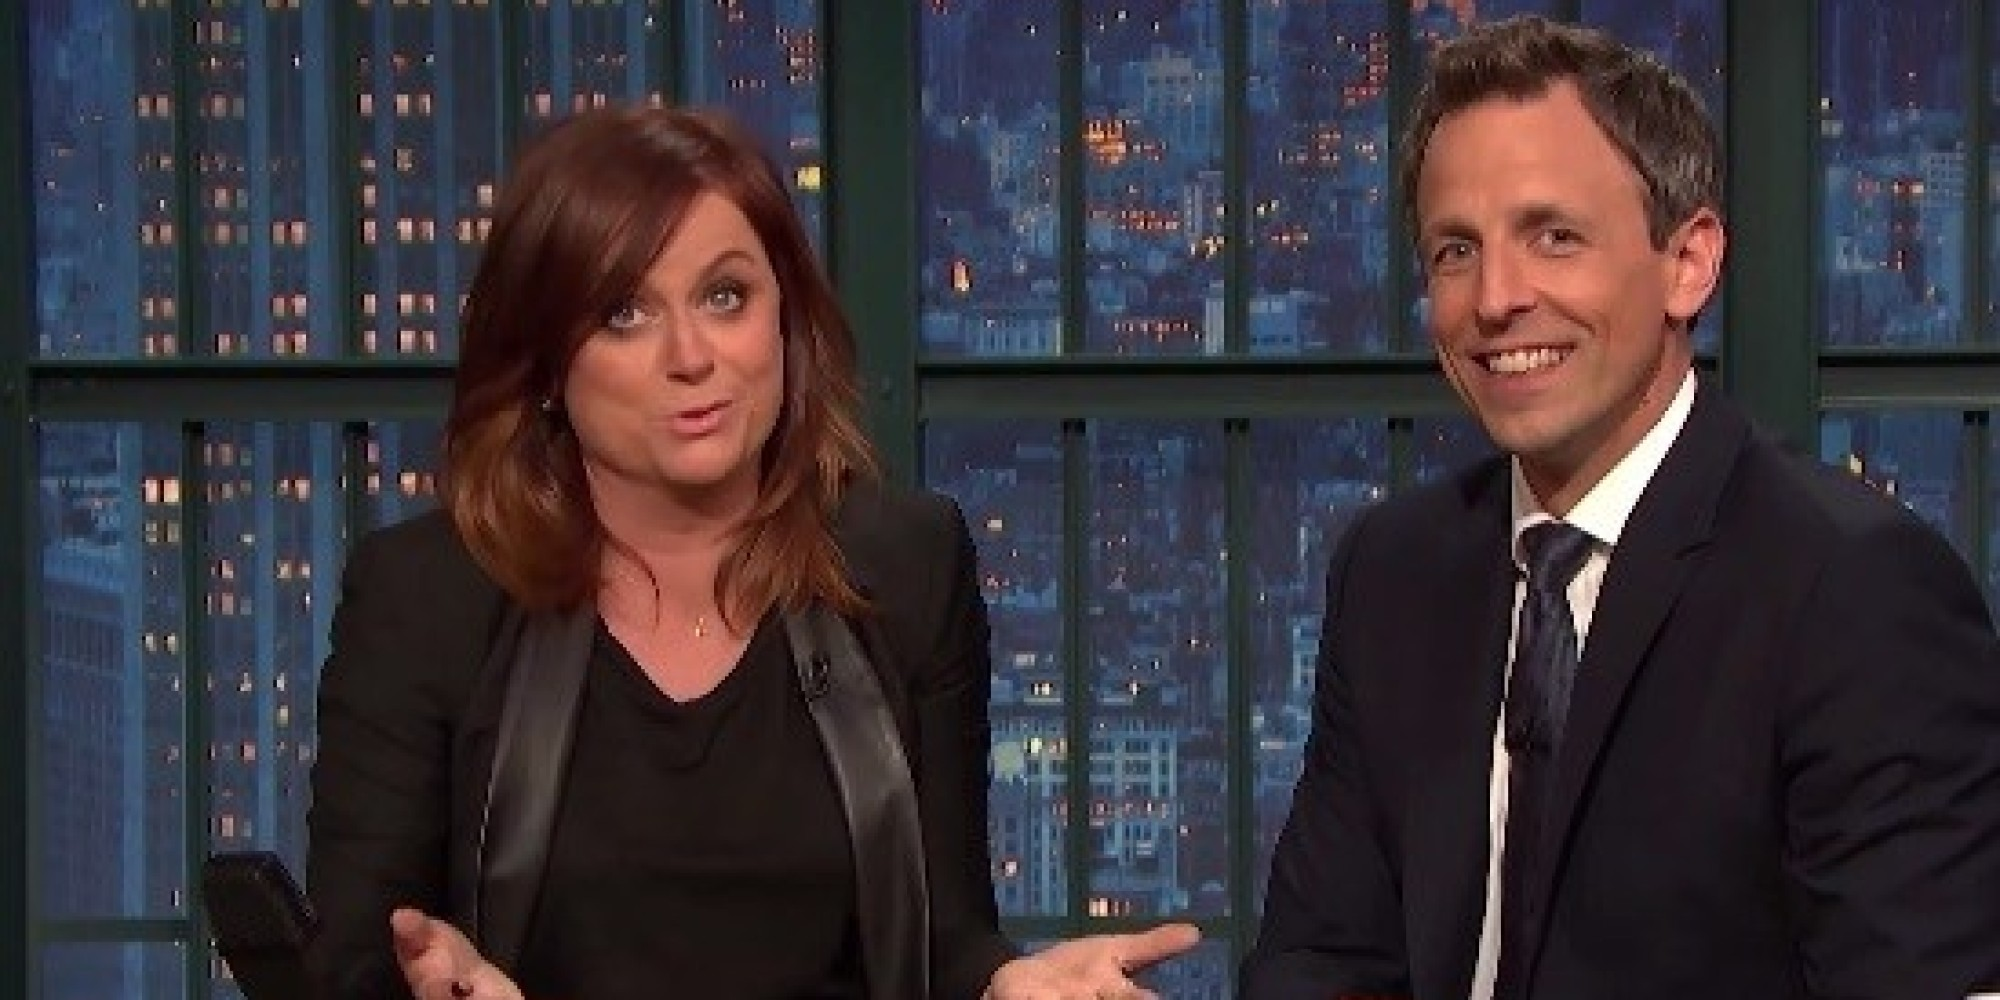 Seth Meyers and Amy Poehler call out sexist sports coverage. Really!